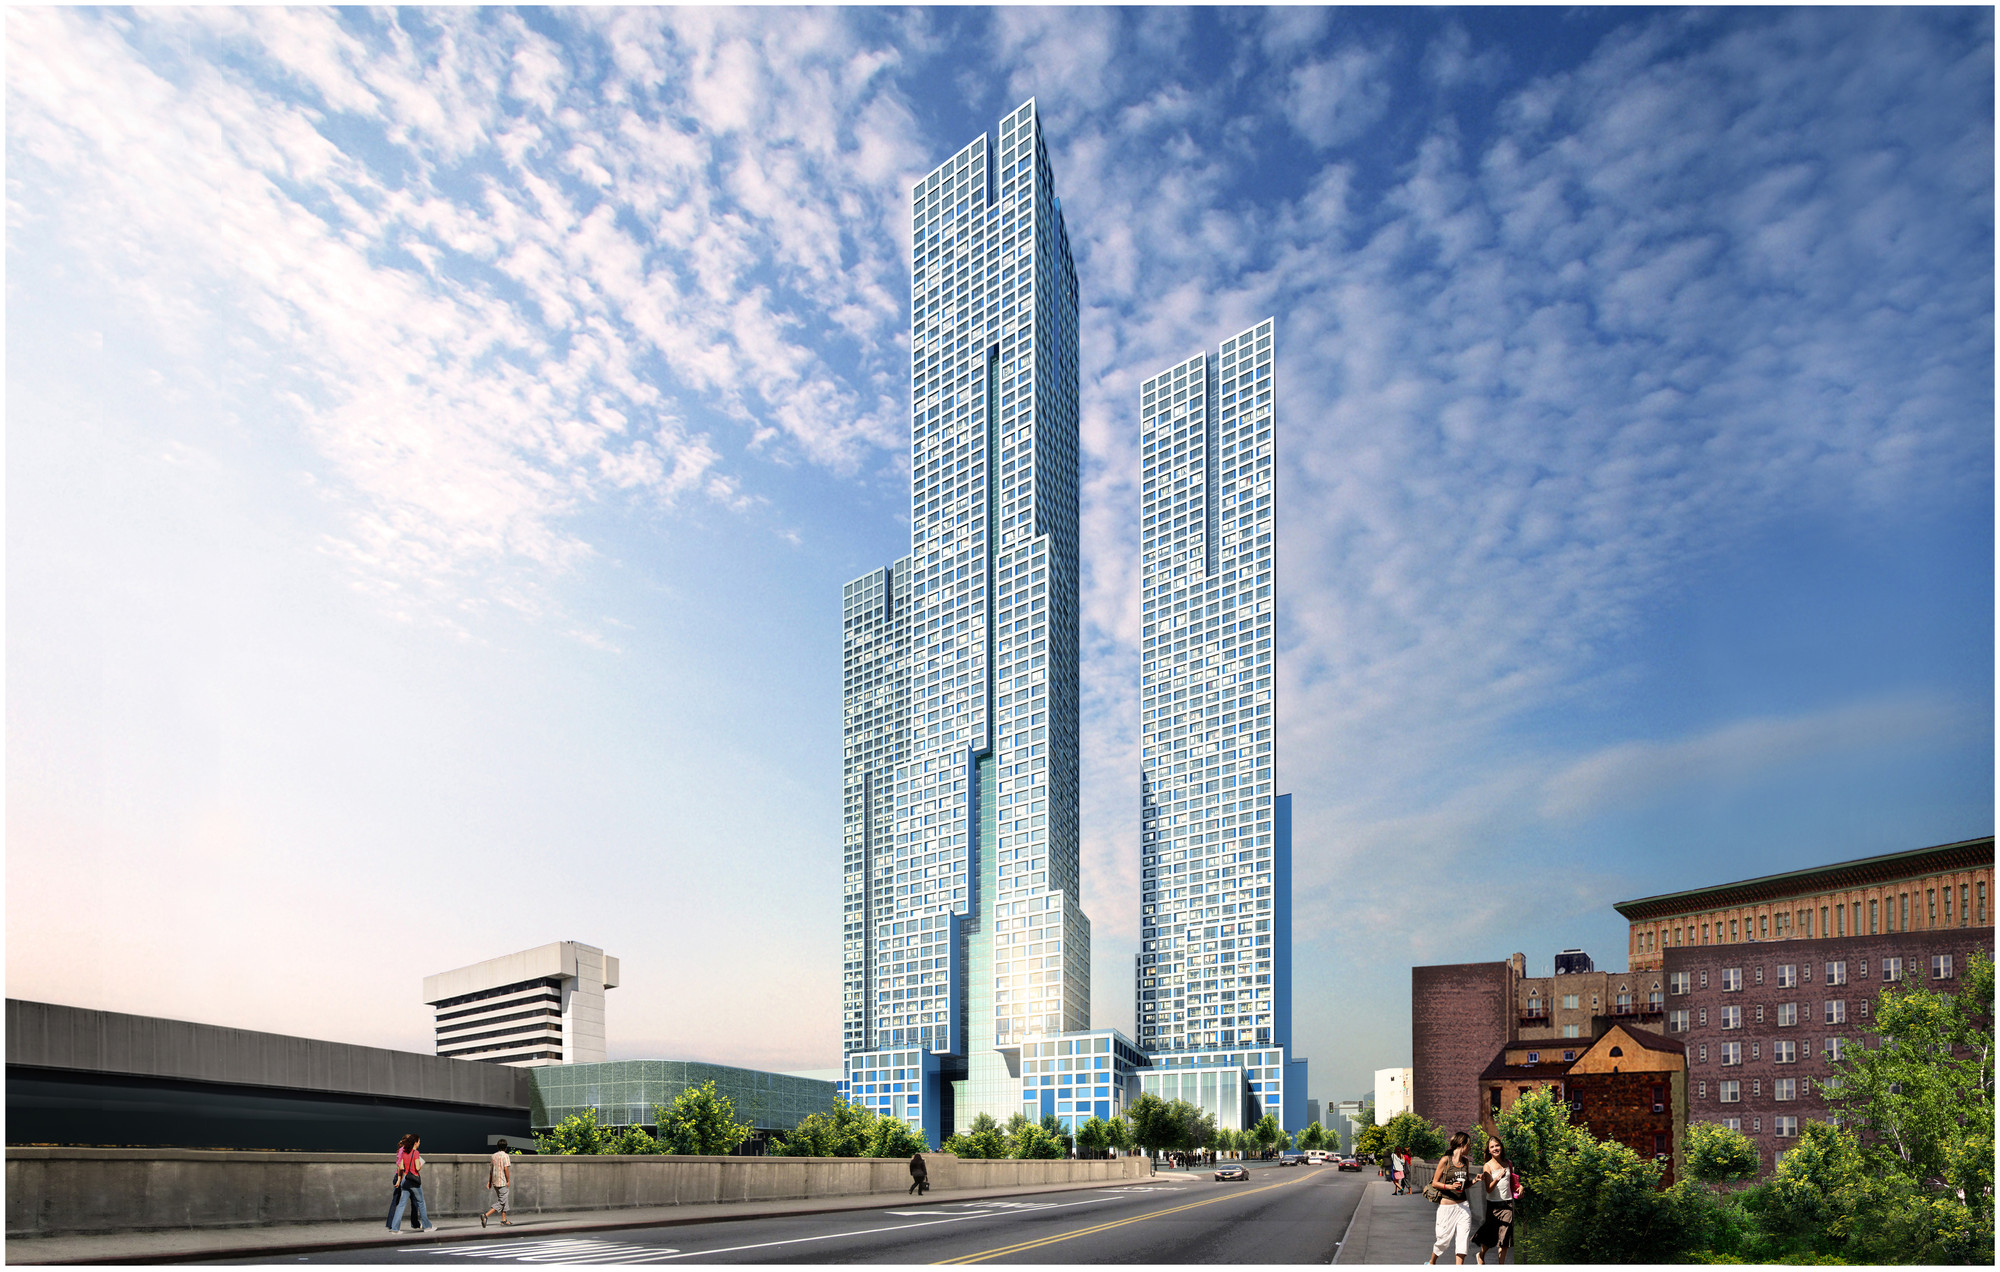 HWKN + Handel Architects Break Ground on New Jersey's Tallest Building, © Hollwich Kushner (HWKN) + Handel Architects